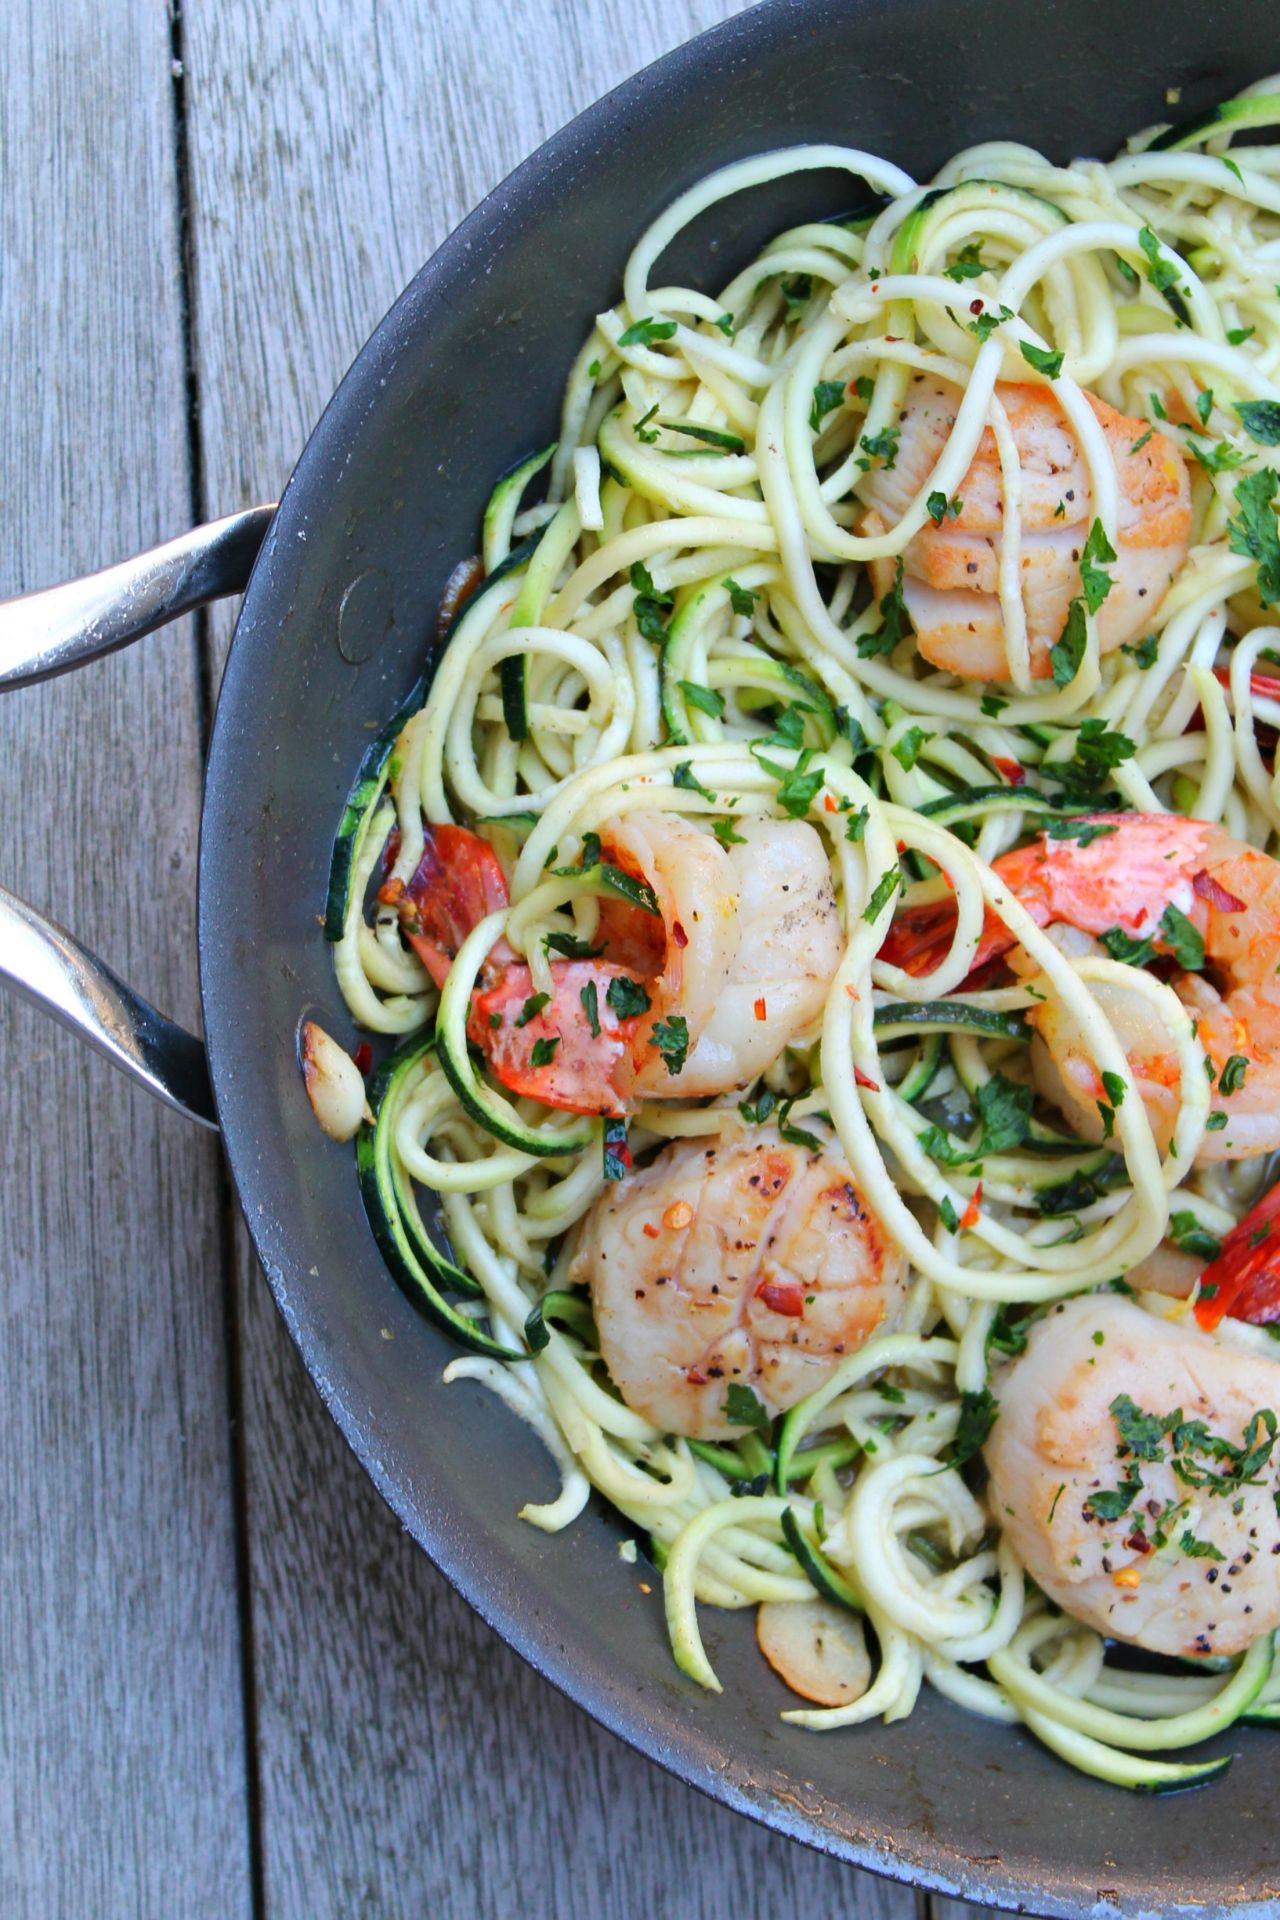 Shrimp and Scallop Scampi with Zucchini Noodles